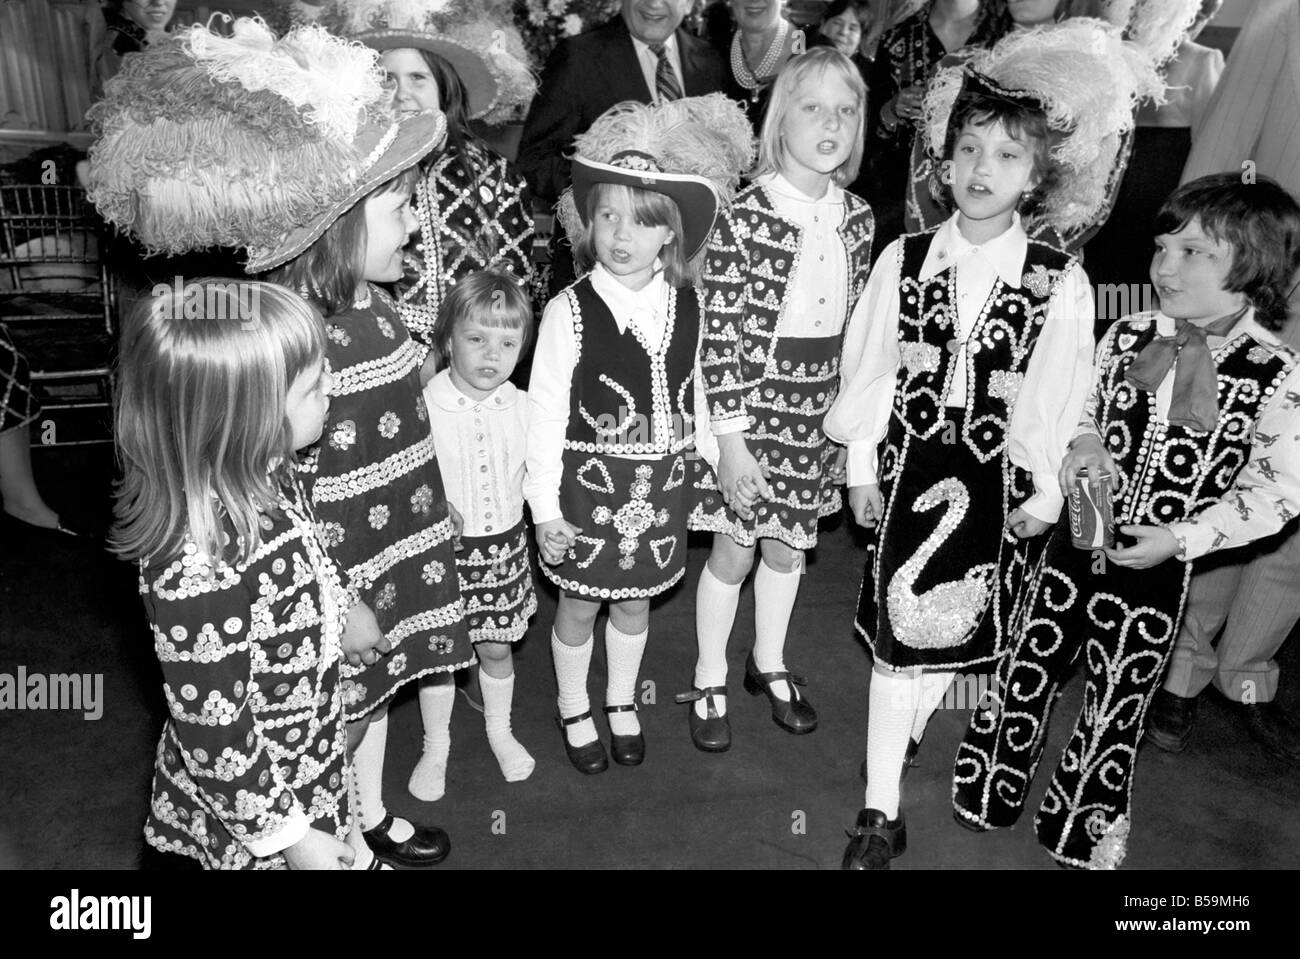 Younger members of the Pearly Kings and Queens seen here at a gathering of the families in the East End of London. - Stock Image